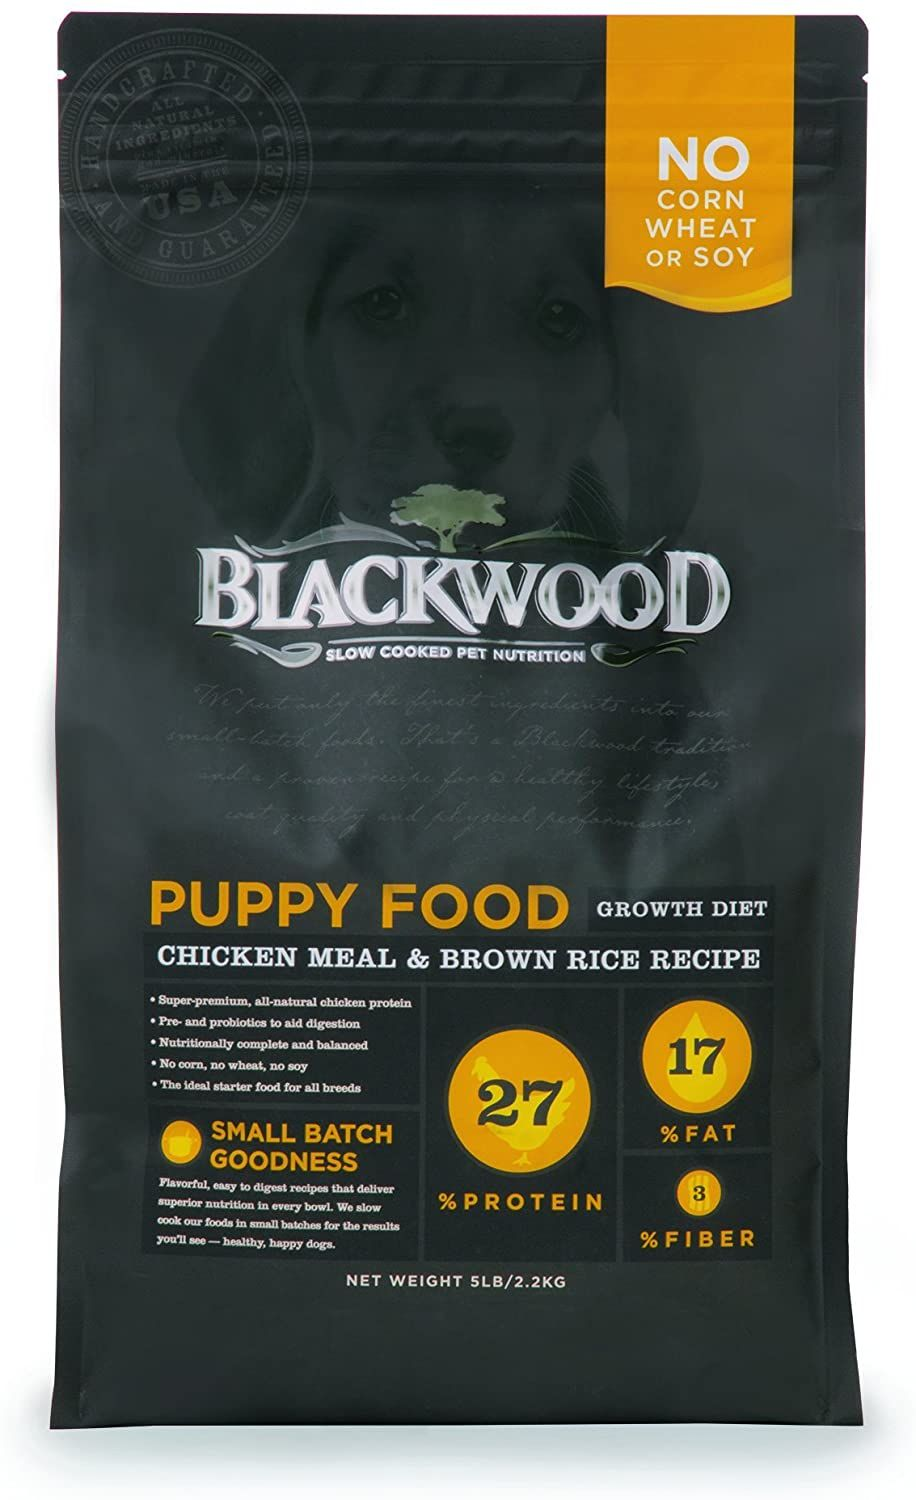 blackwood puppy food growth diet chicken meal brown rice recipe